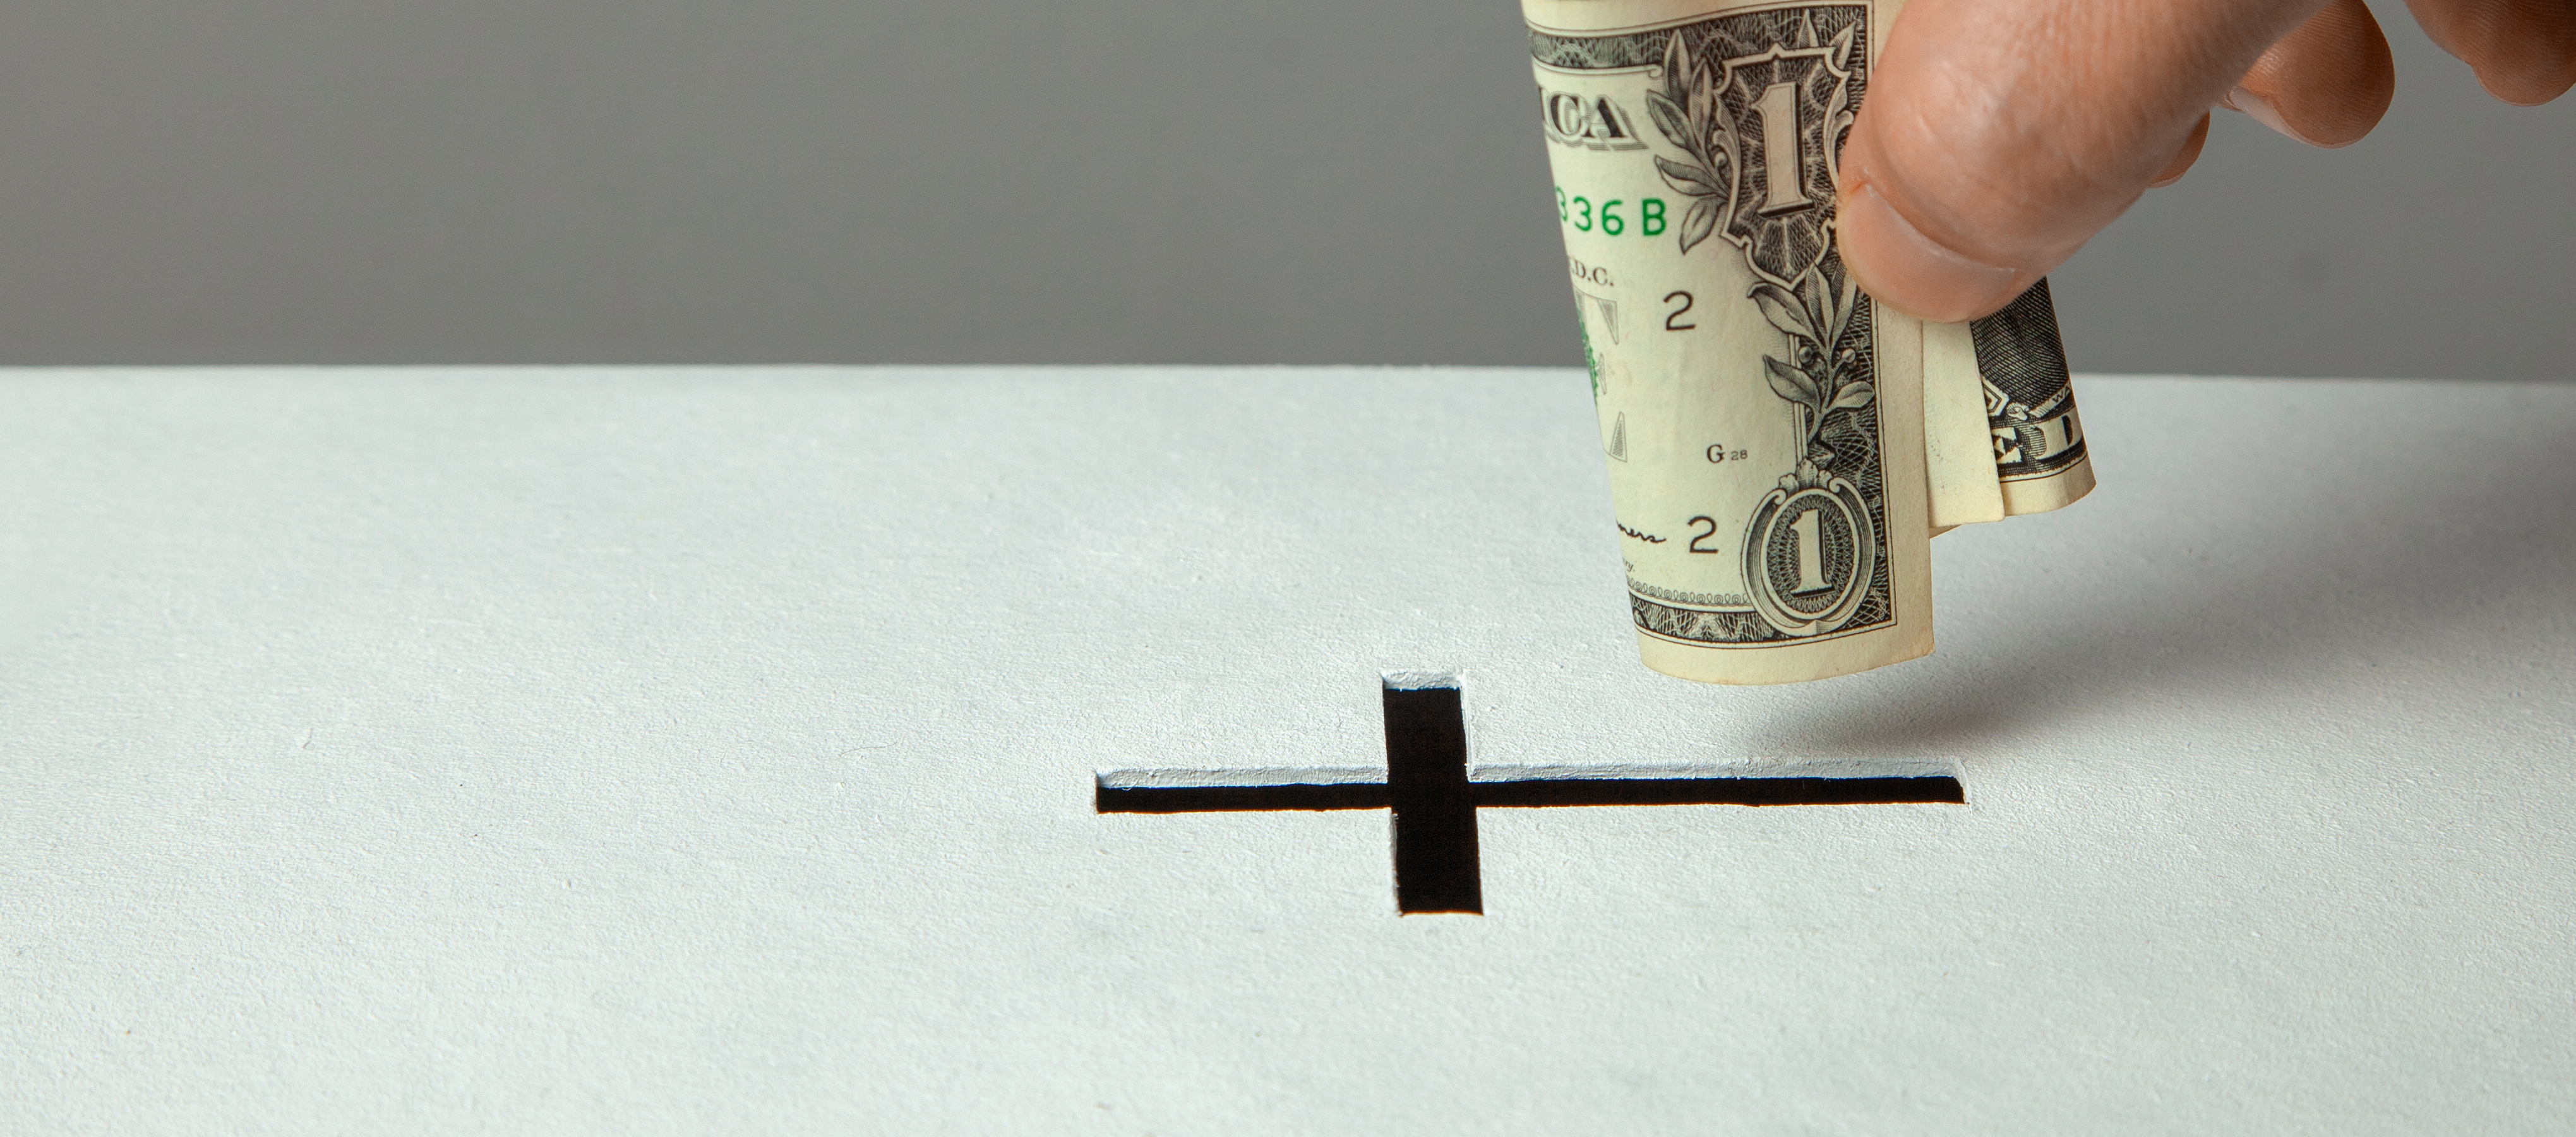 church-finance-101-cropped-2